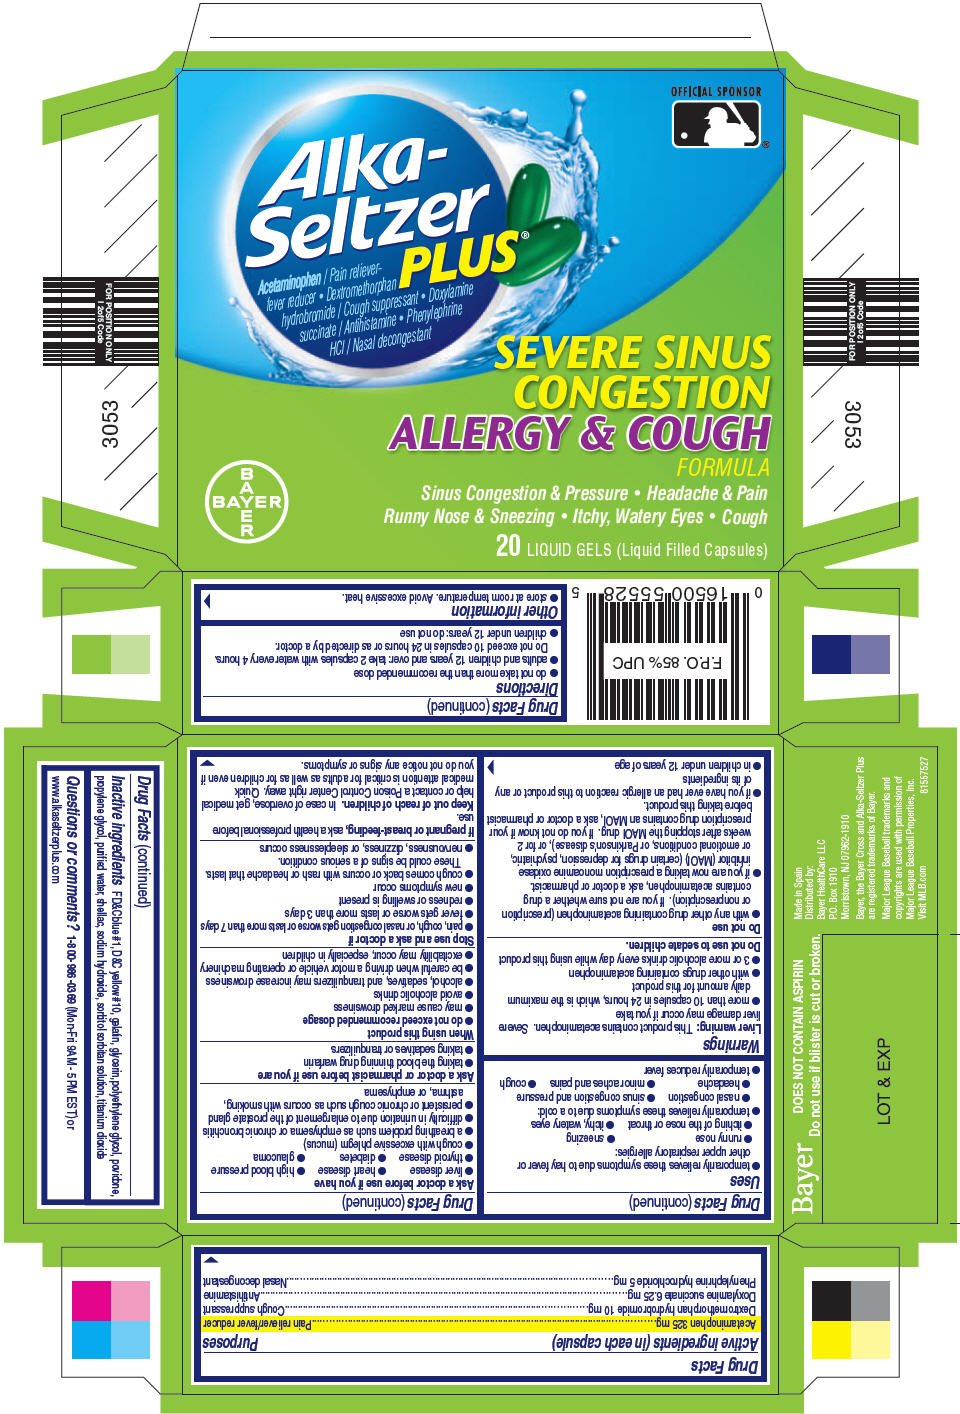 Alka-Seltzer Plus Severe Sinus Congestion Allergy and ...